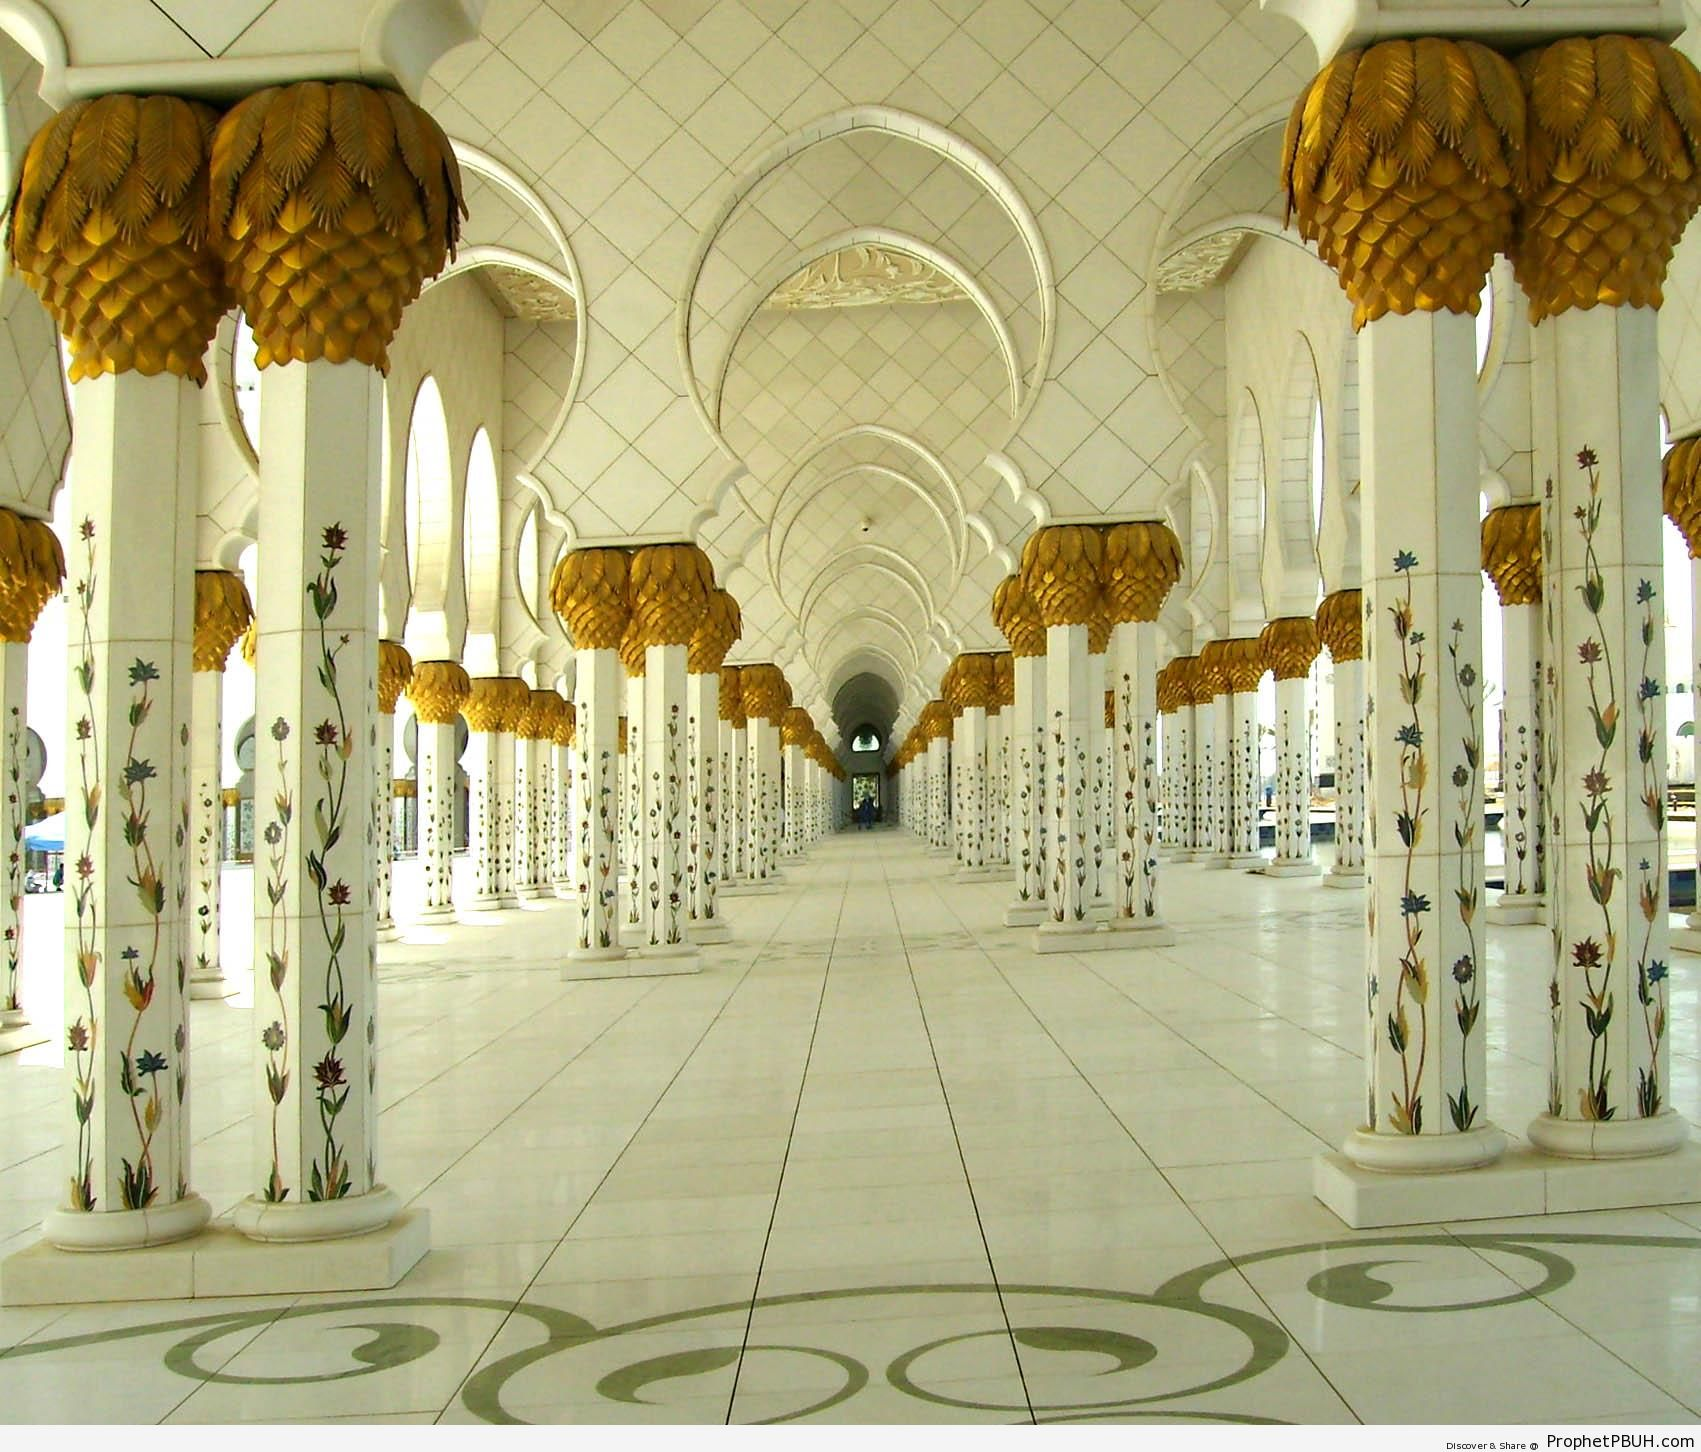 Archways at Sheikh Zayed Grand Mosque in Abu Dhabi, United Arab Emirates - Abu Dhabi, United Arab Emirates -Picture